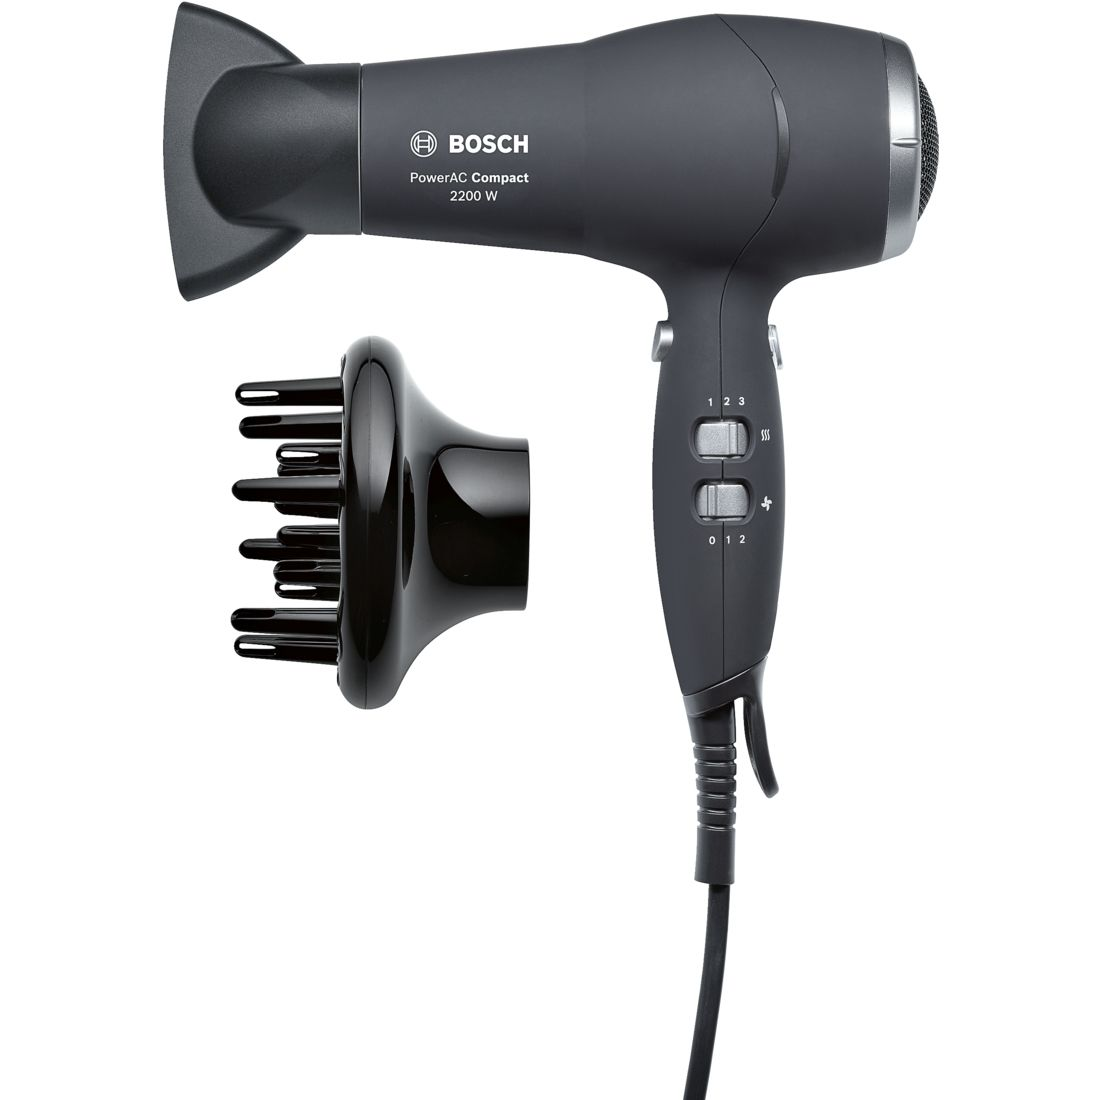 Pin By Cherie On Hair Dryer Best Professional Hair Dryer Hair Dryer Makeover Tips